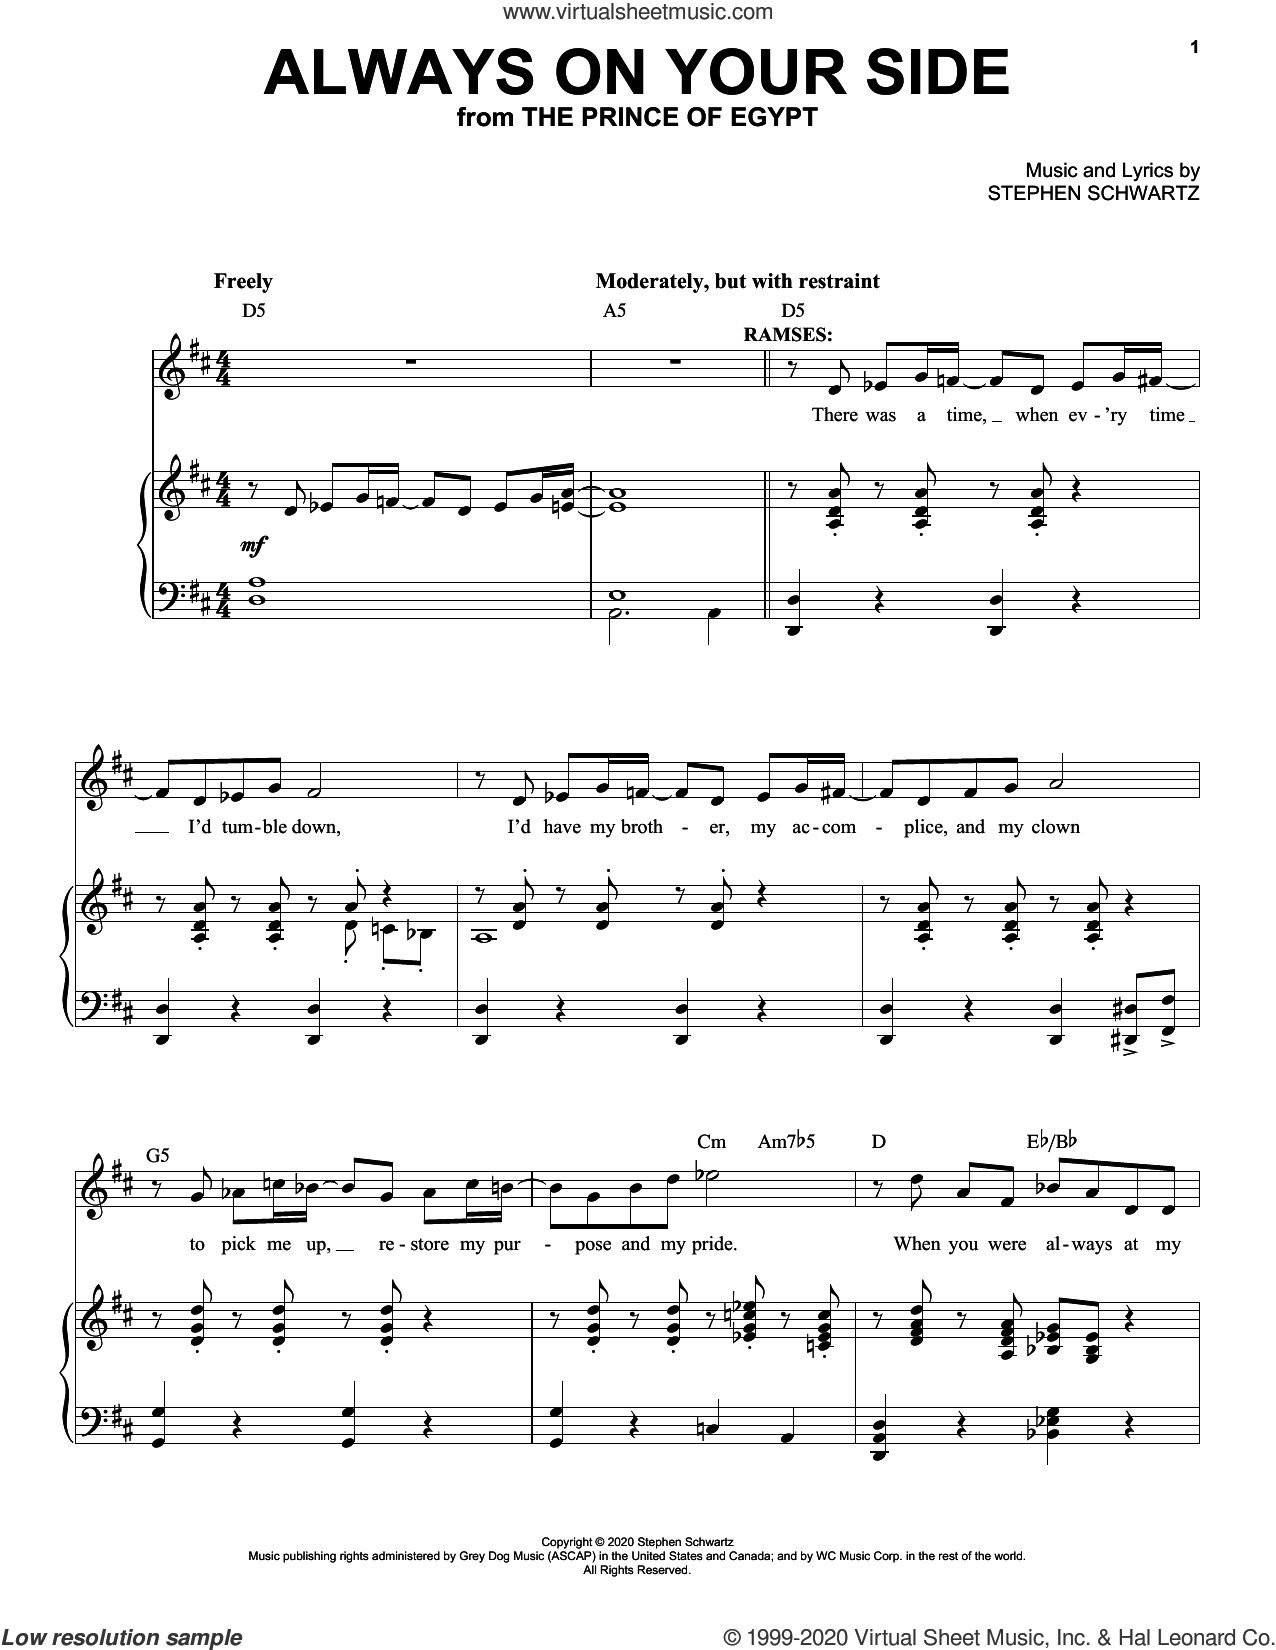 Always On Your Side (from The Prince Of Egypt: A New Musical) sheet music for voice and piano by Stephen Schwartz, intermediate skill level